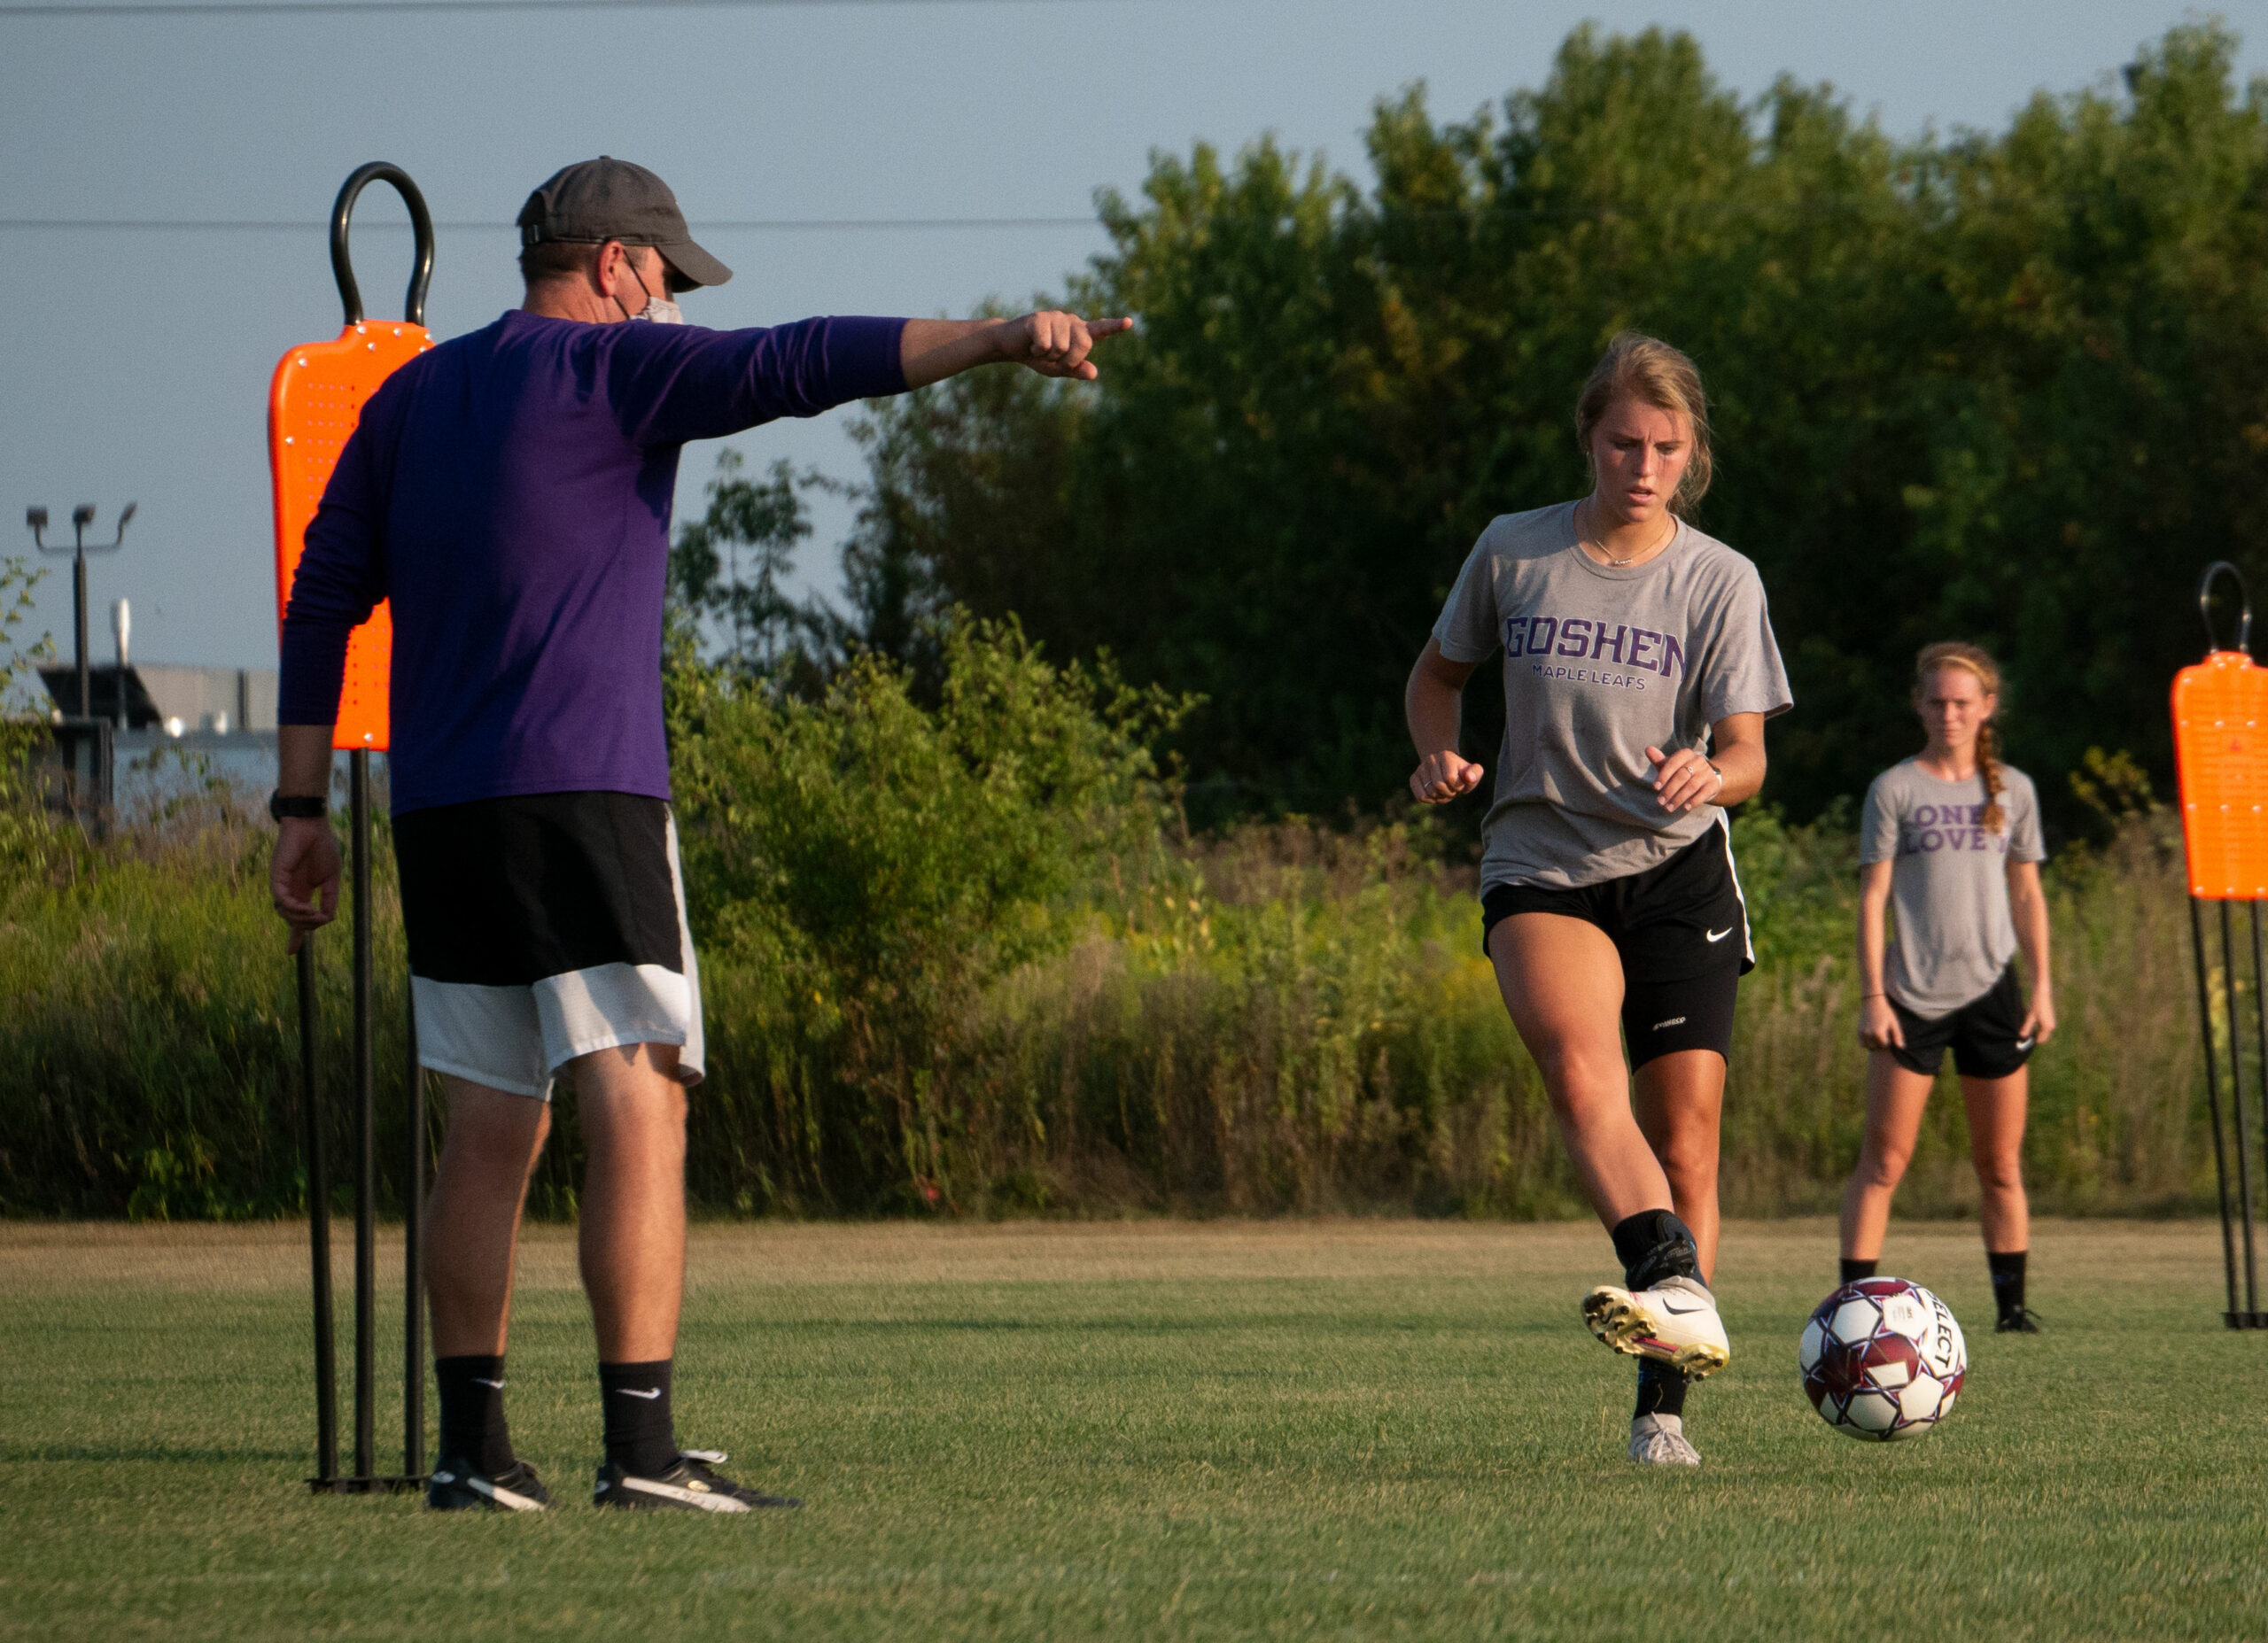 Soccer player and coach in action